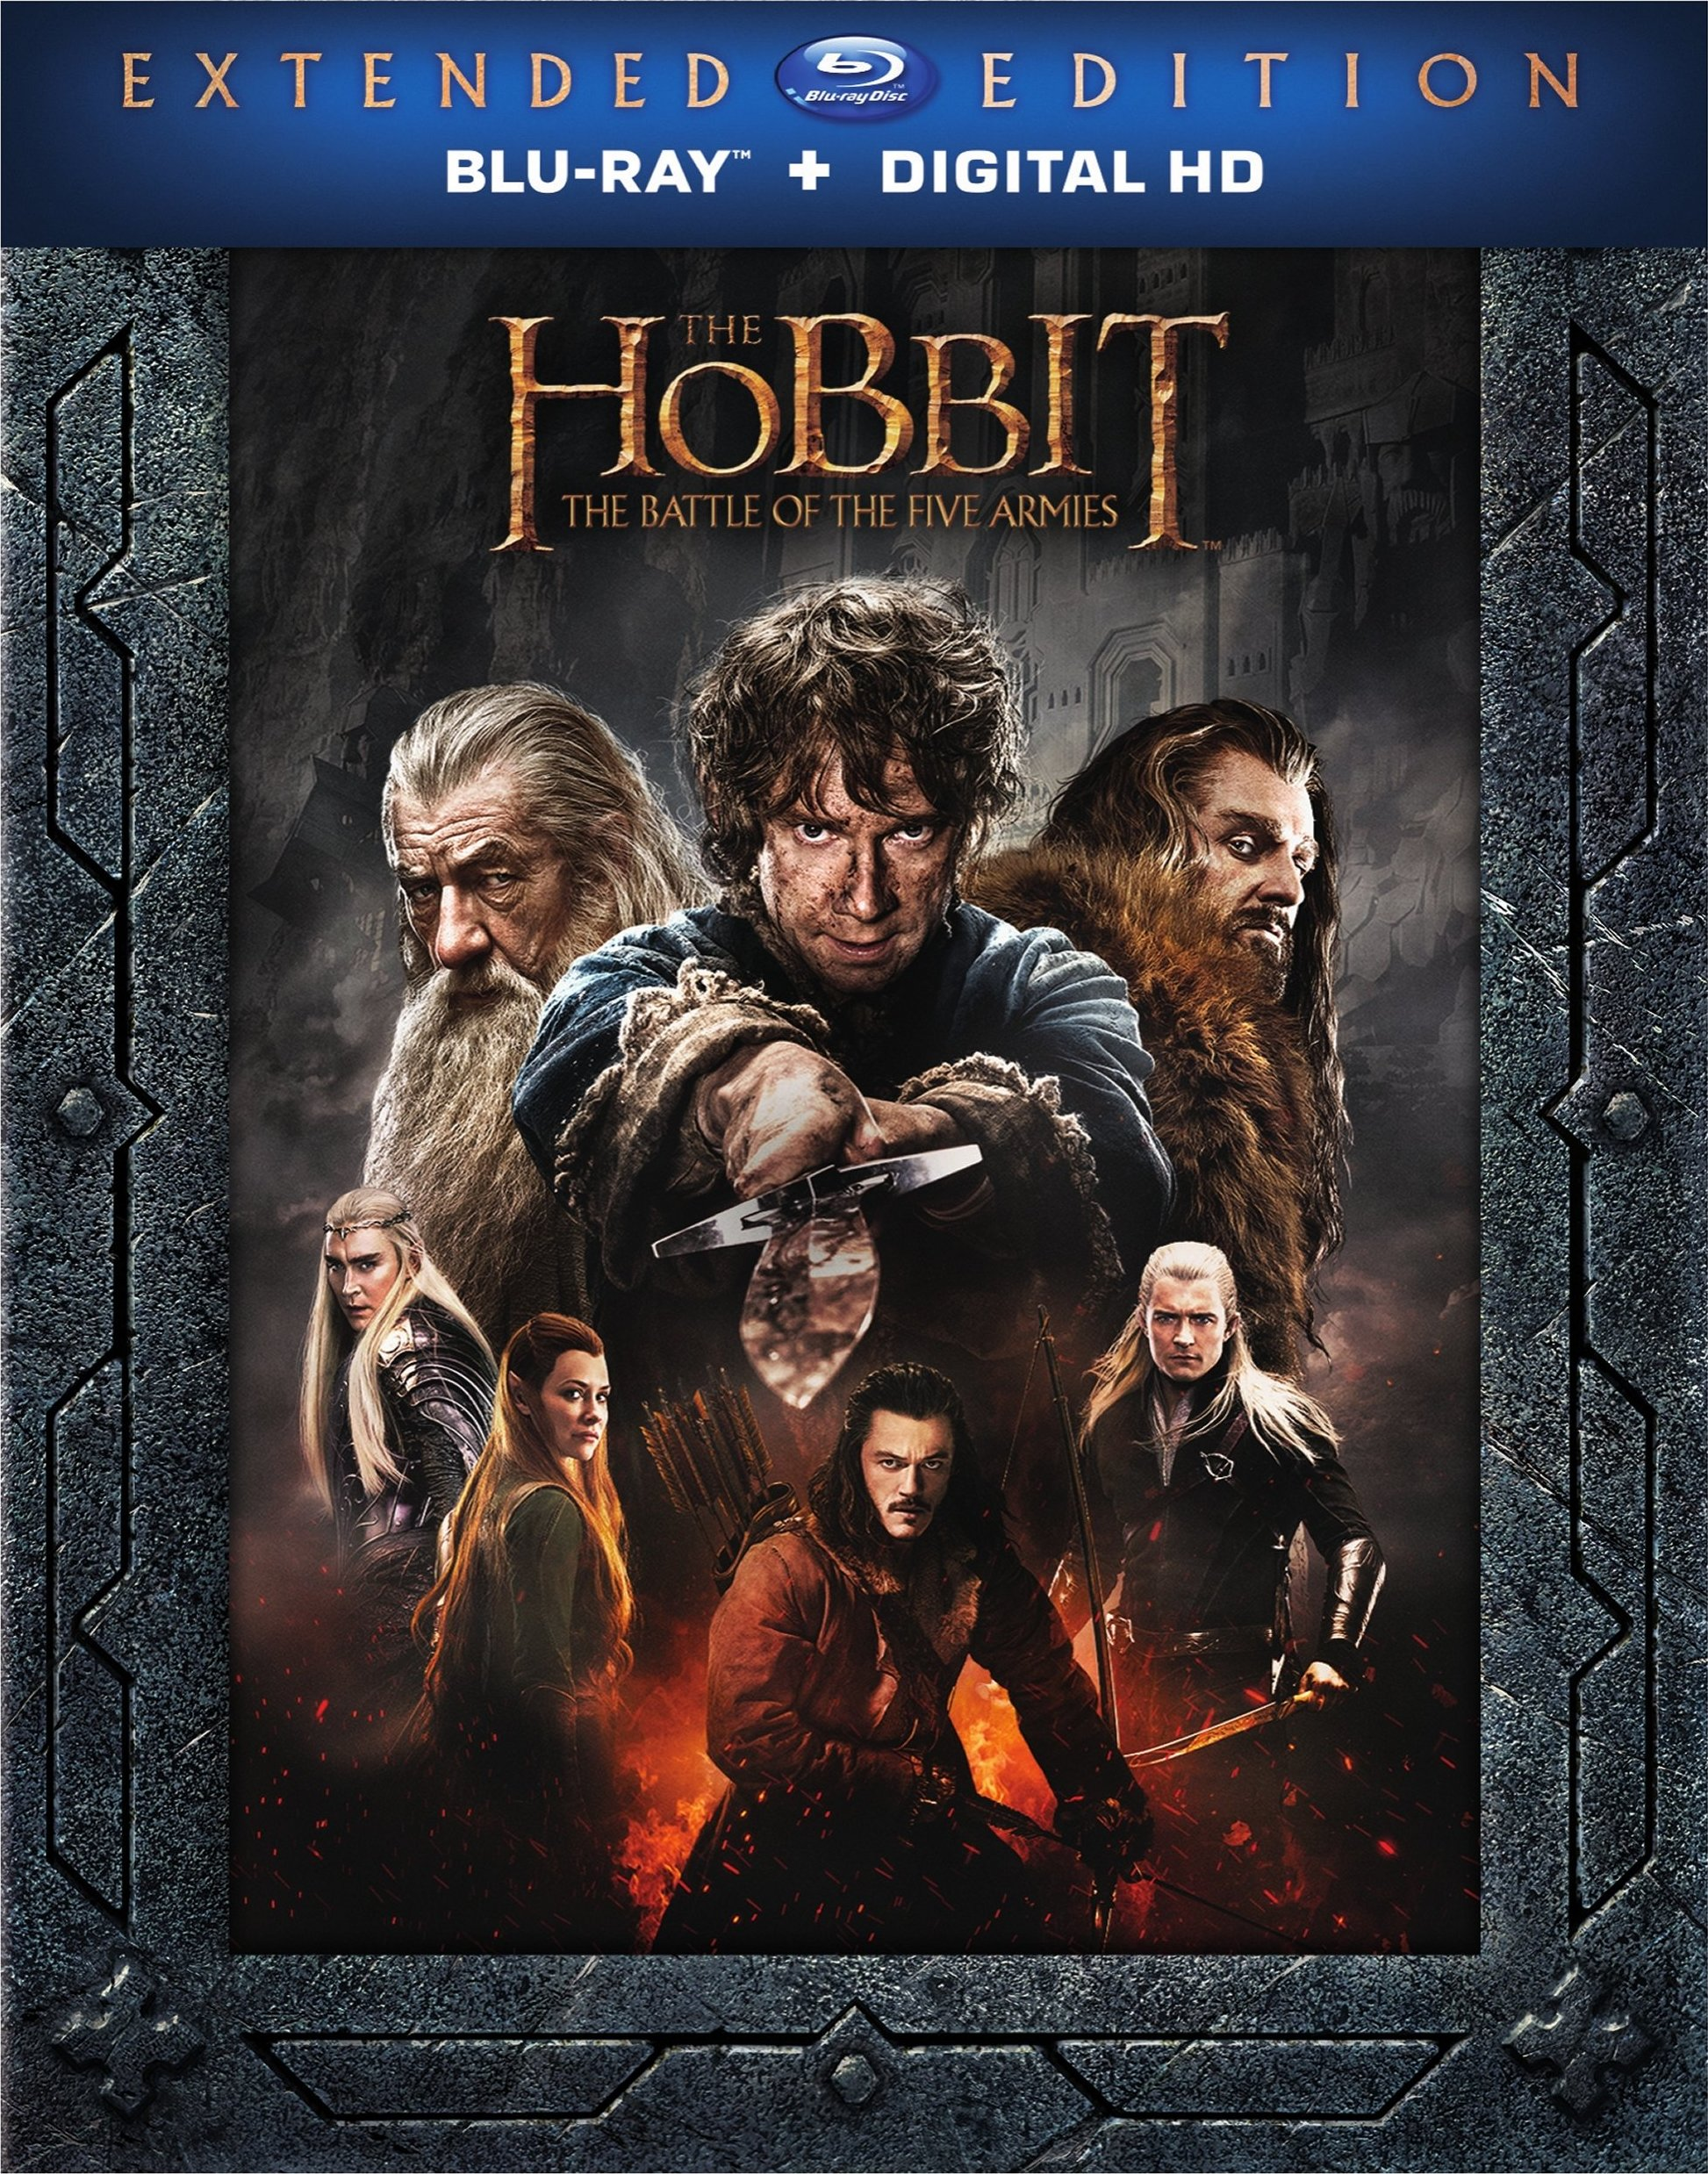 The Hobbit: The Battle of the Five Armies poster image